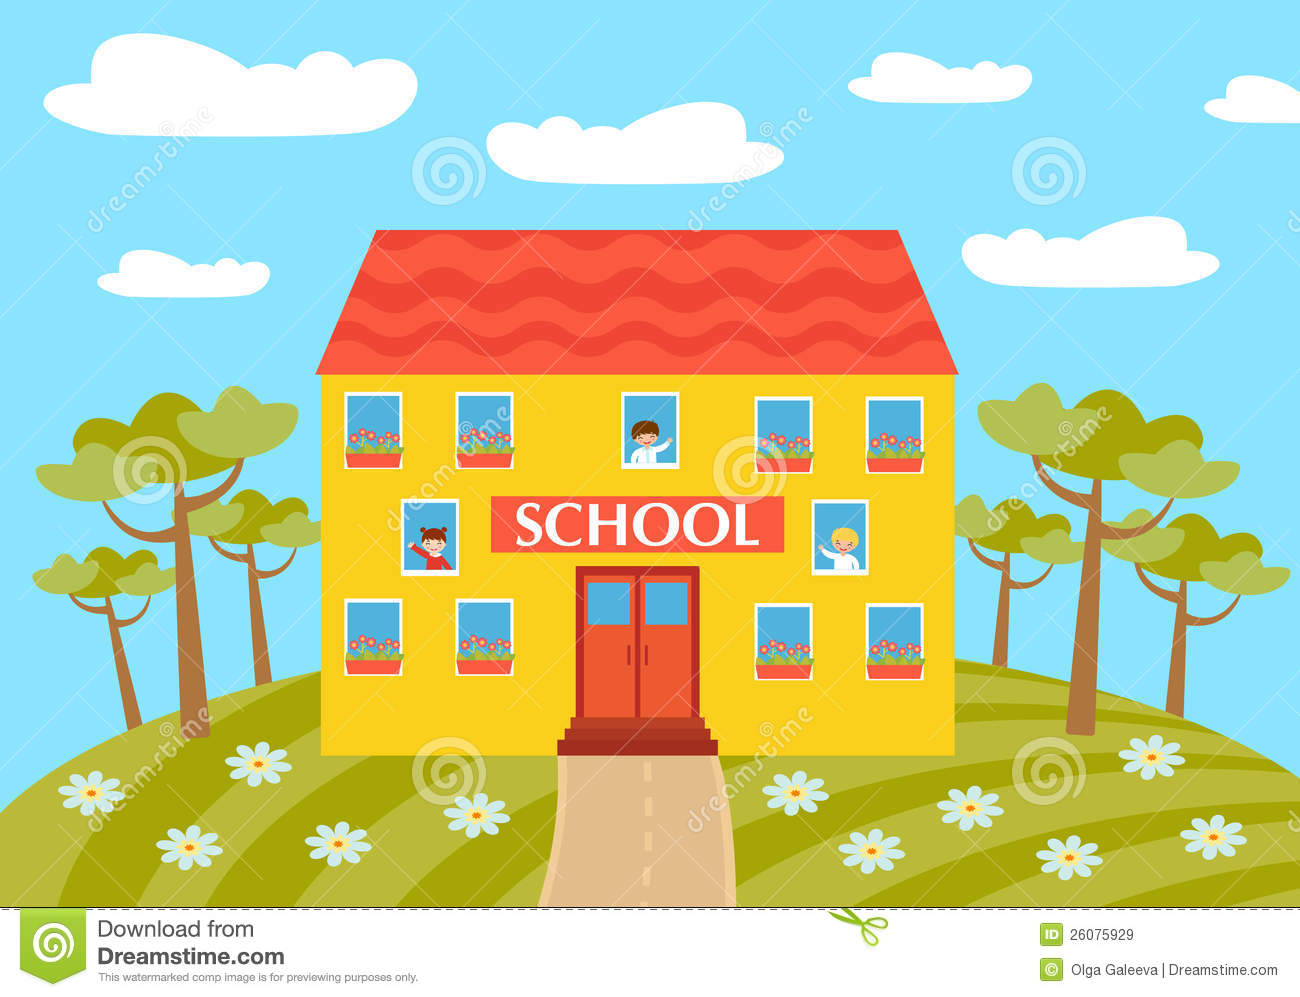 School building clipart for kids.